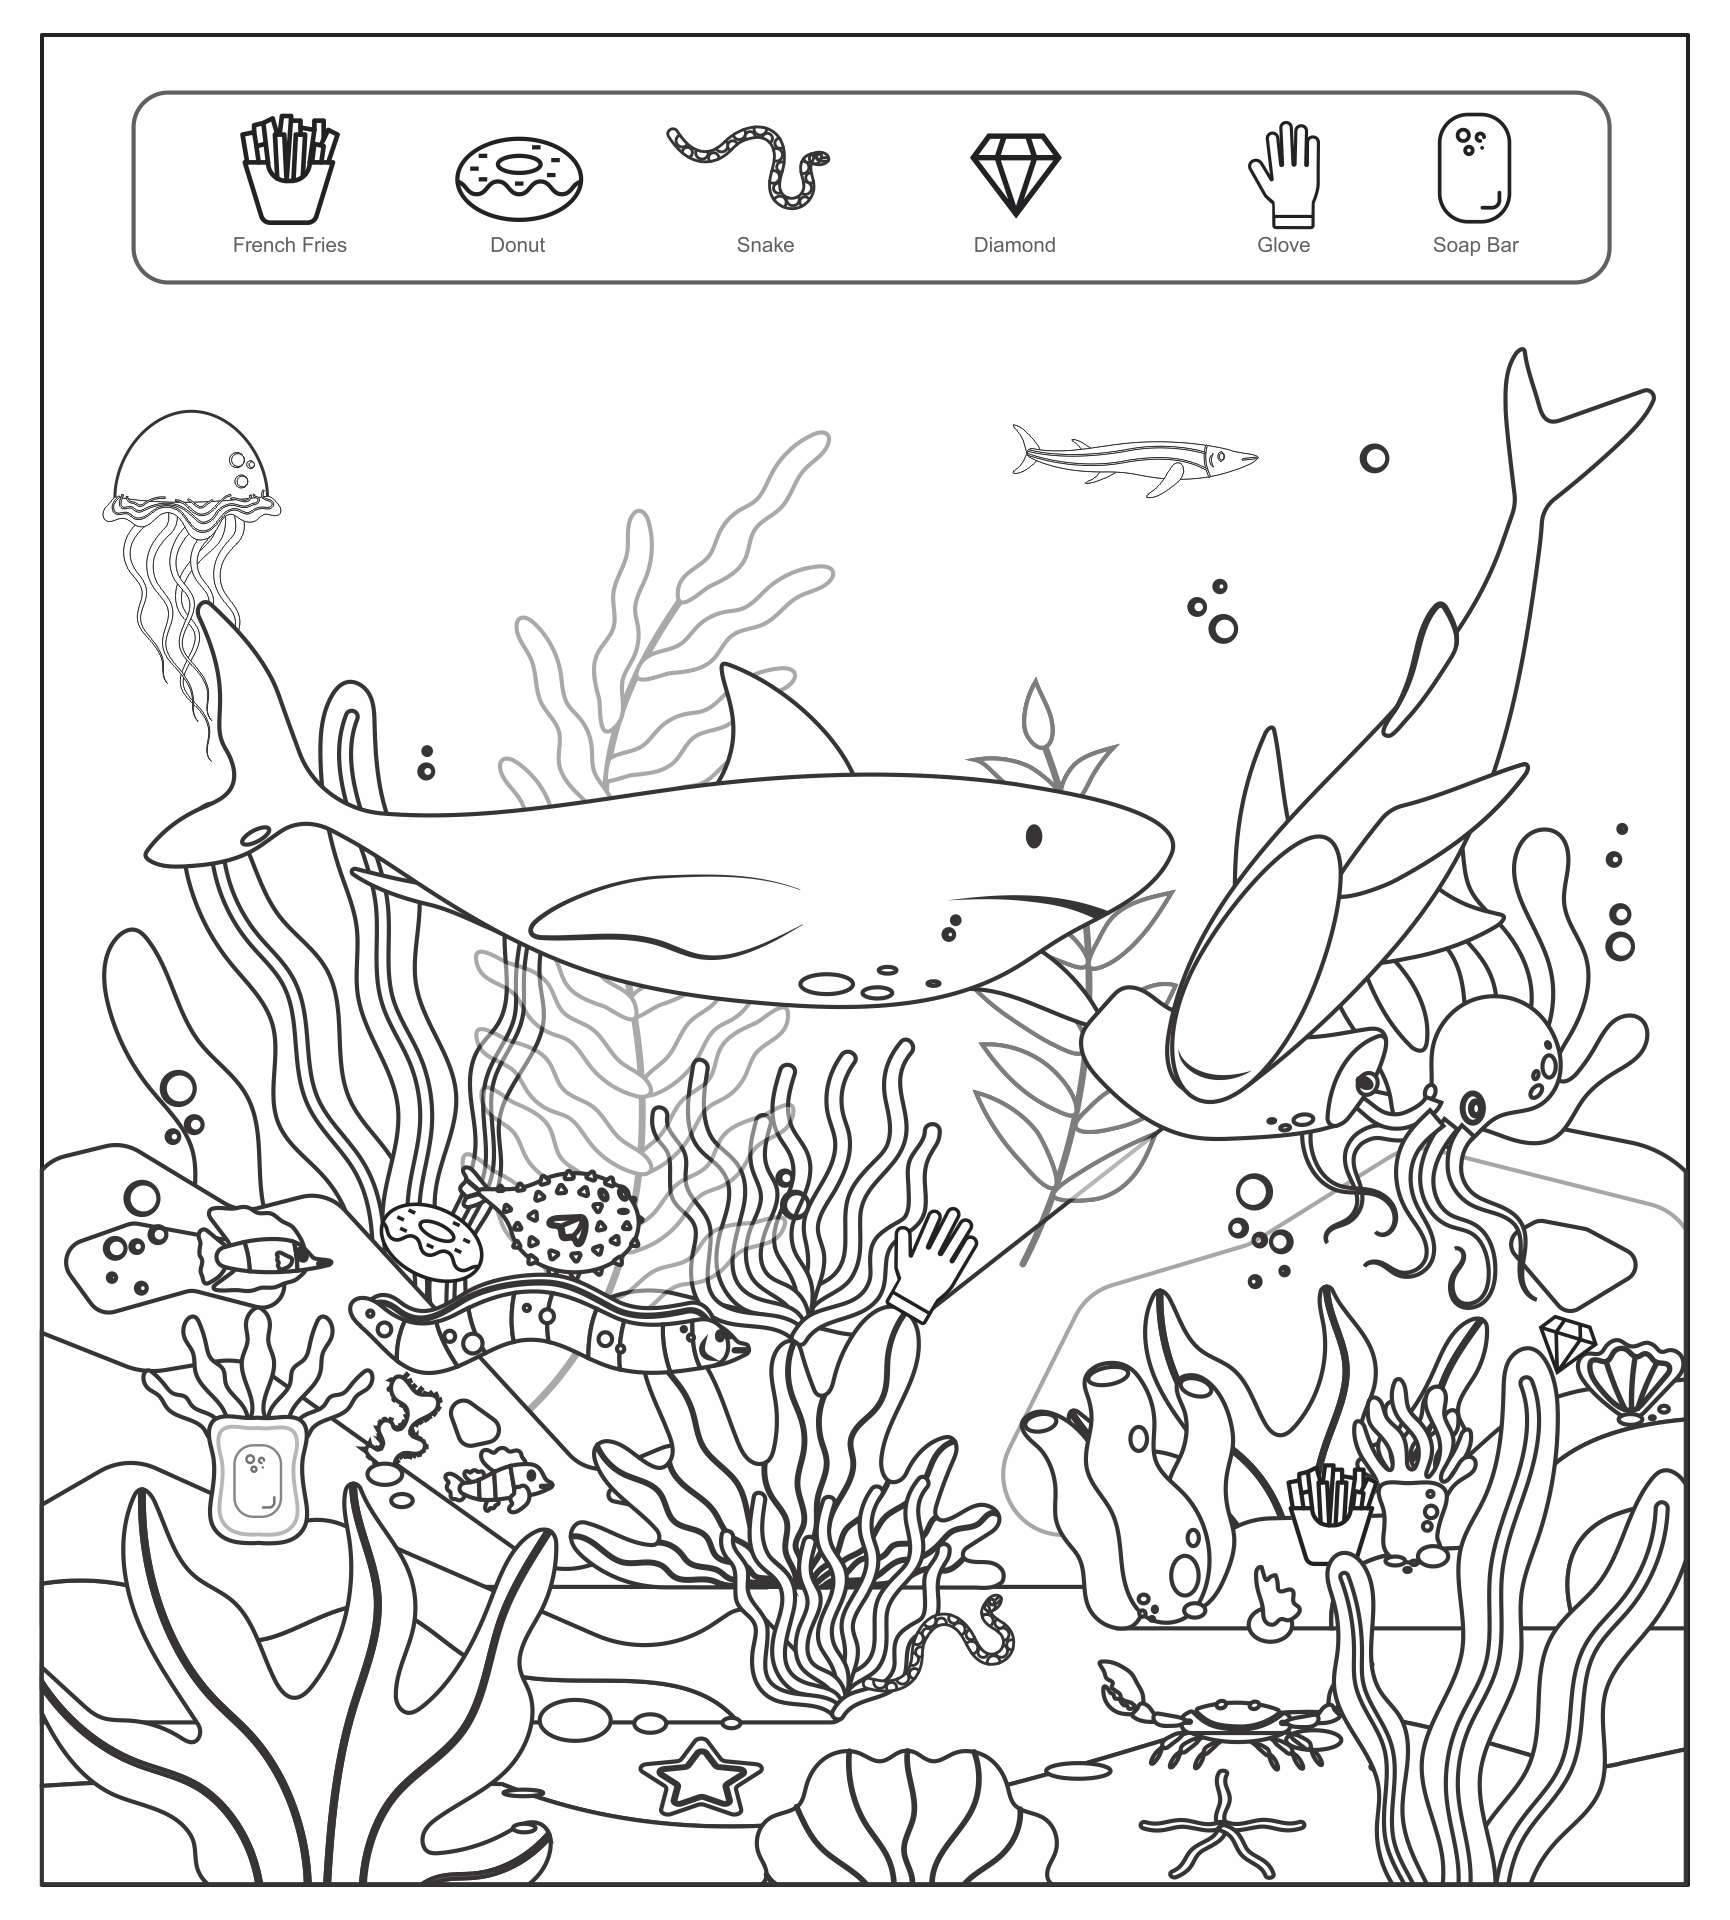 find it coloring pages | 5 Best Images of Easy Printable Hidden Pictures Highlights ...